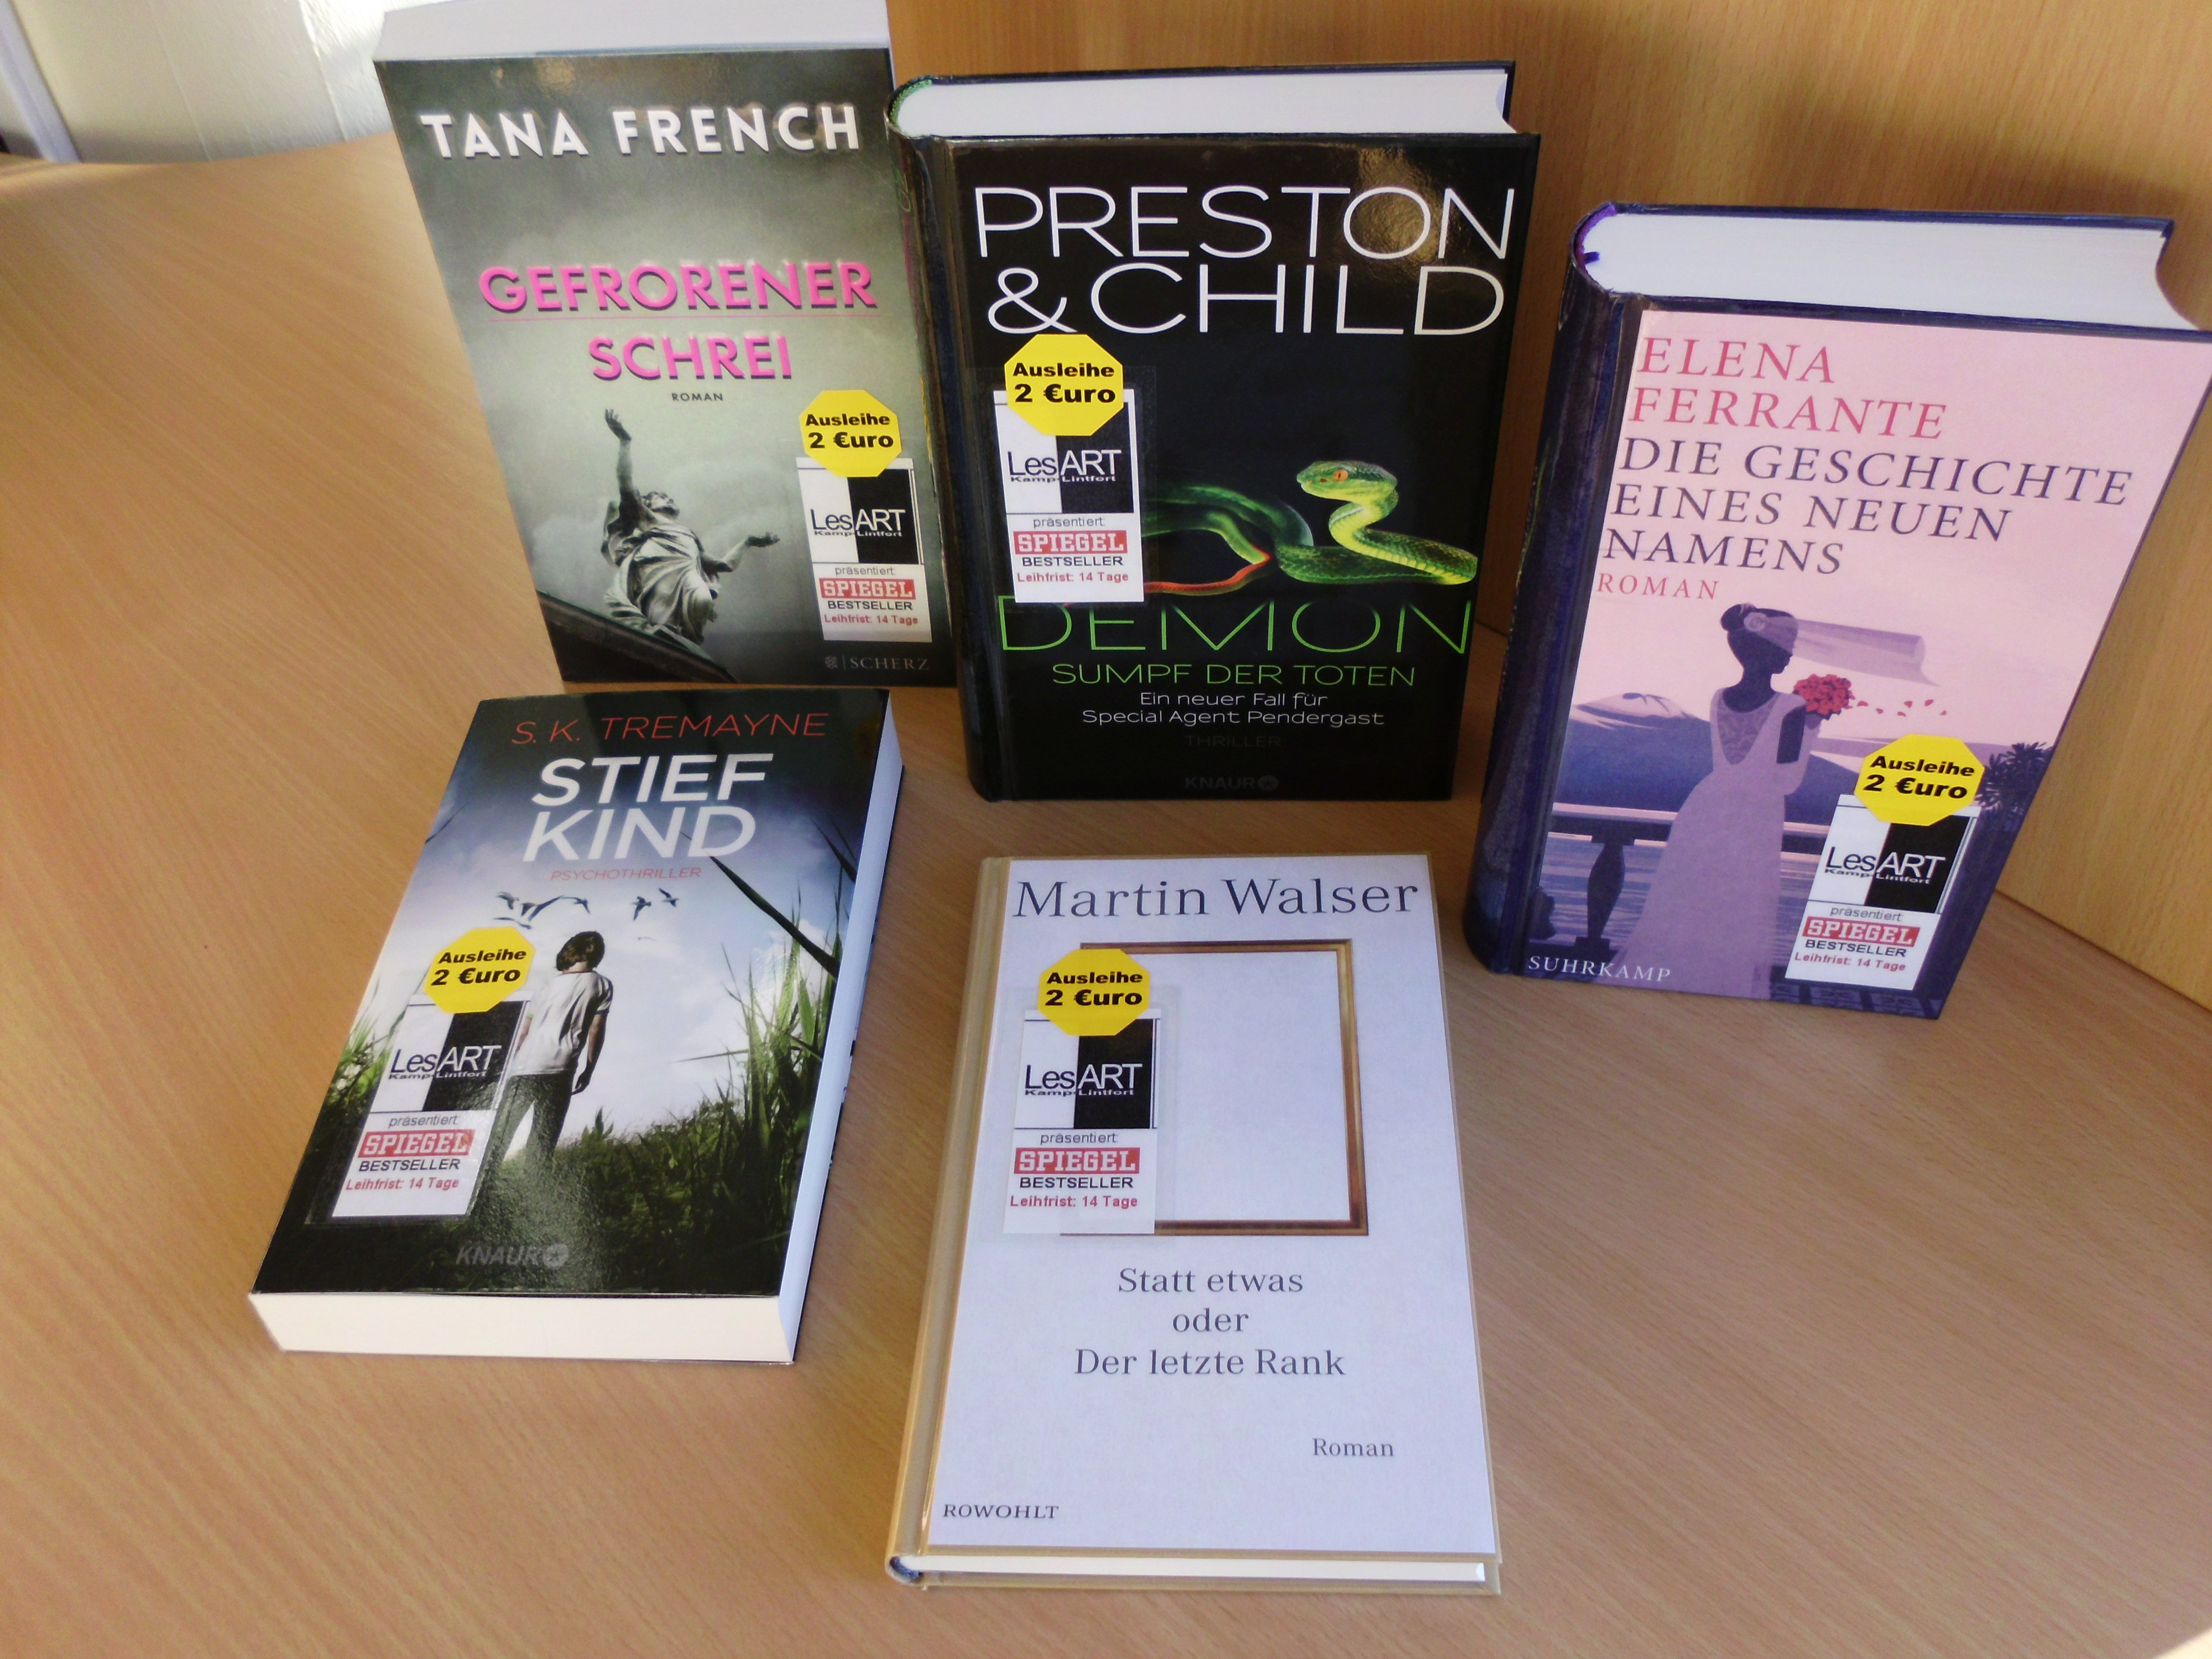 Bestseller Tremayne, Ferrante, Walser, French, Preston & Child